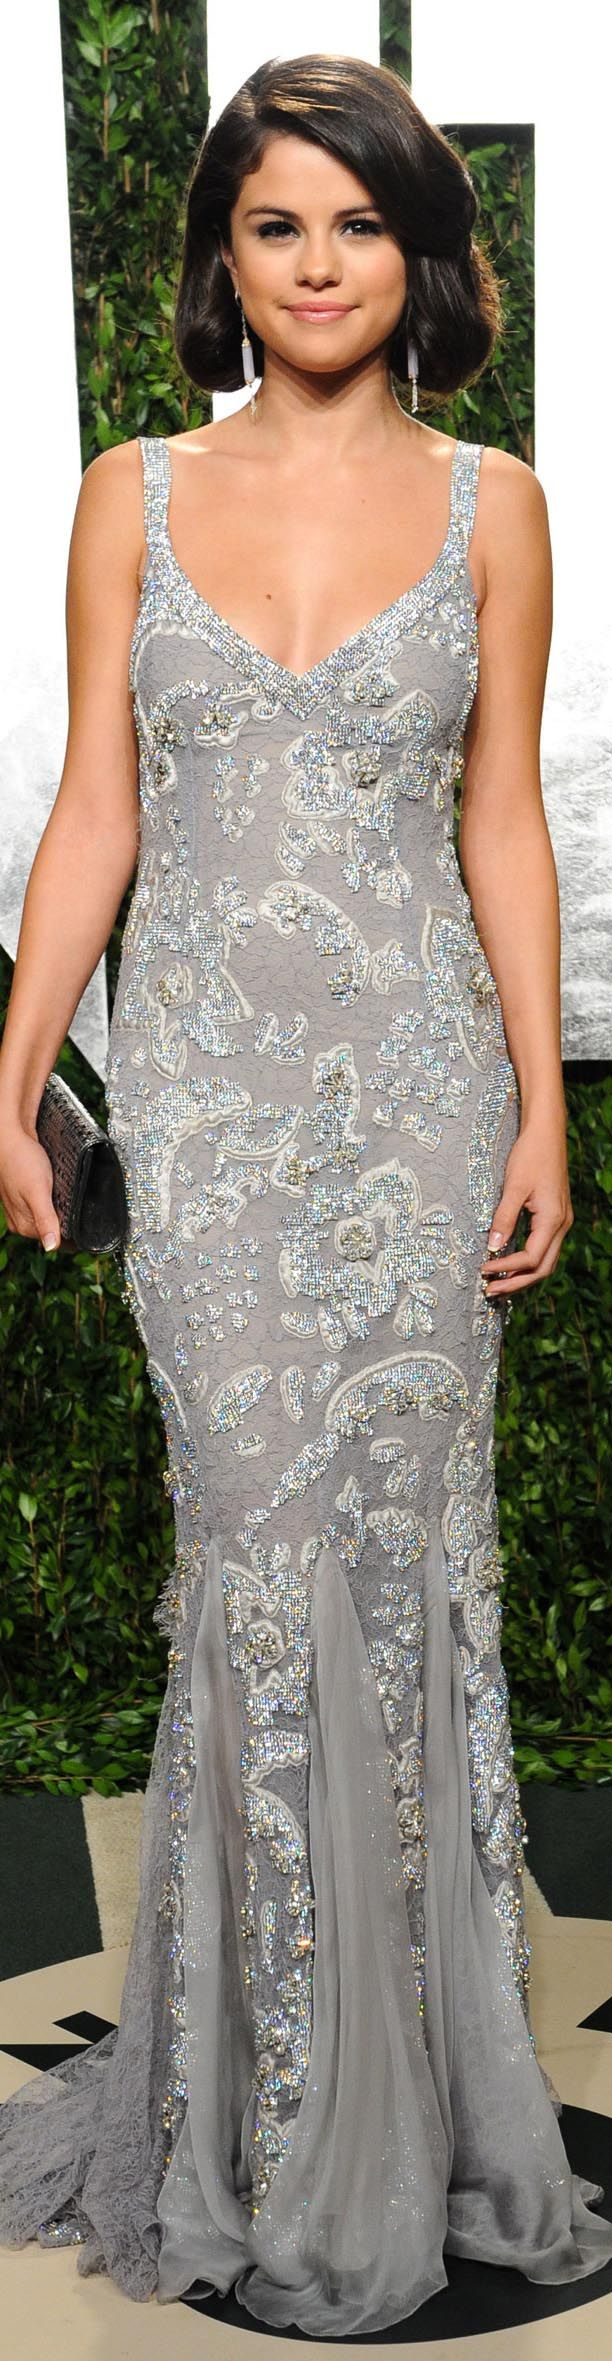 Selena gomez love this dress but not a fan of the hair in this